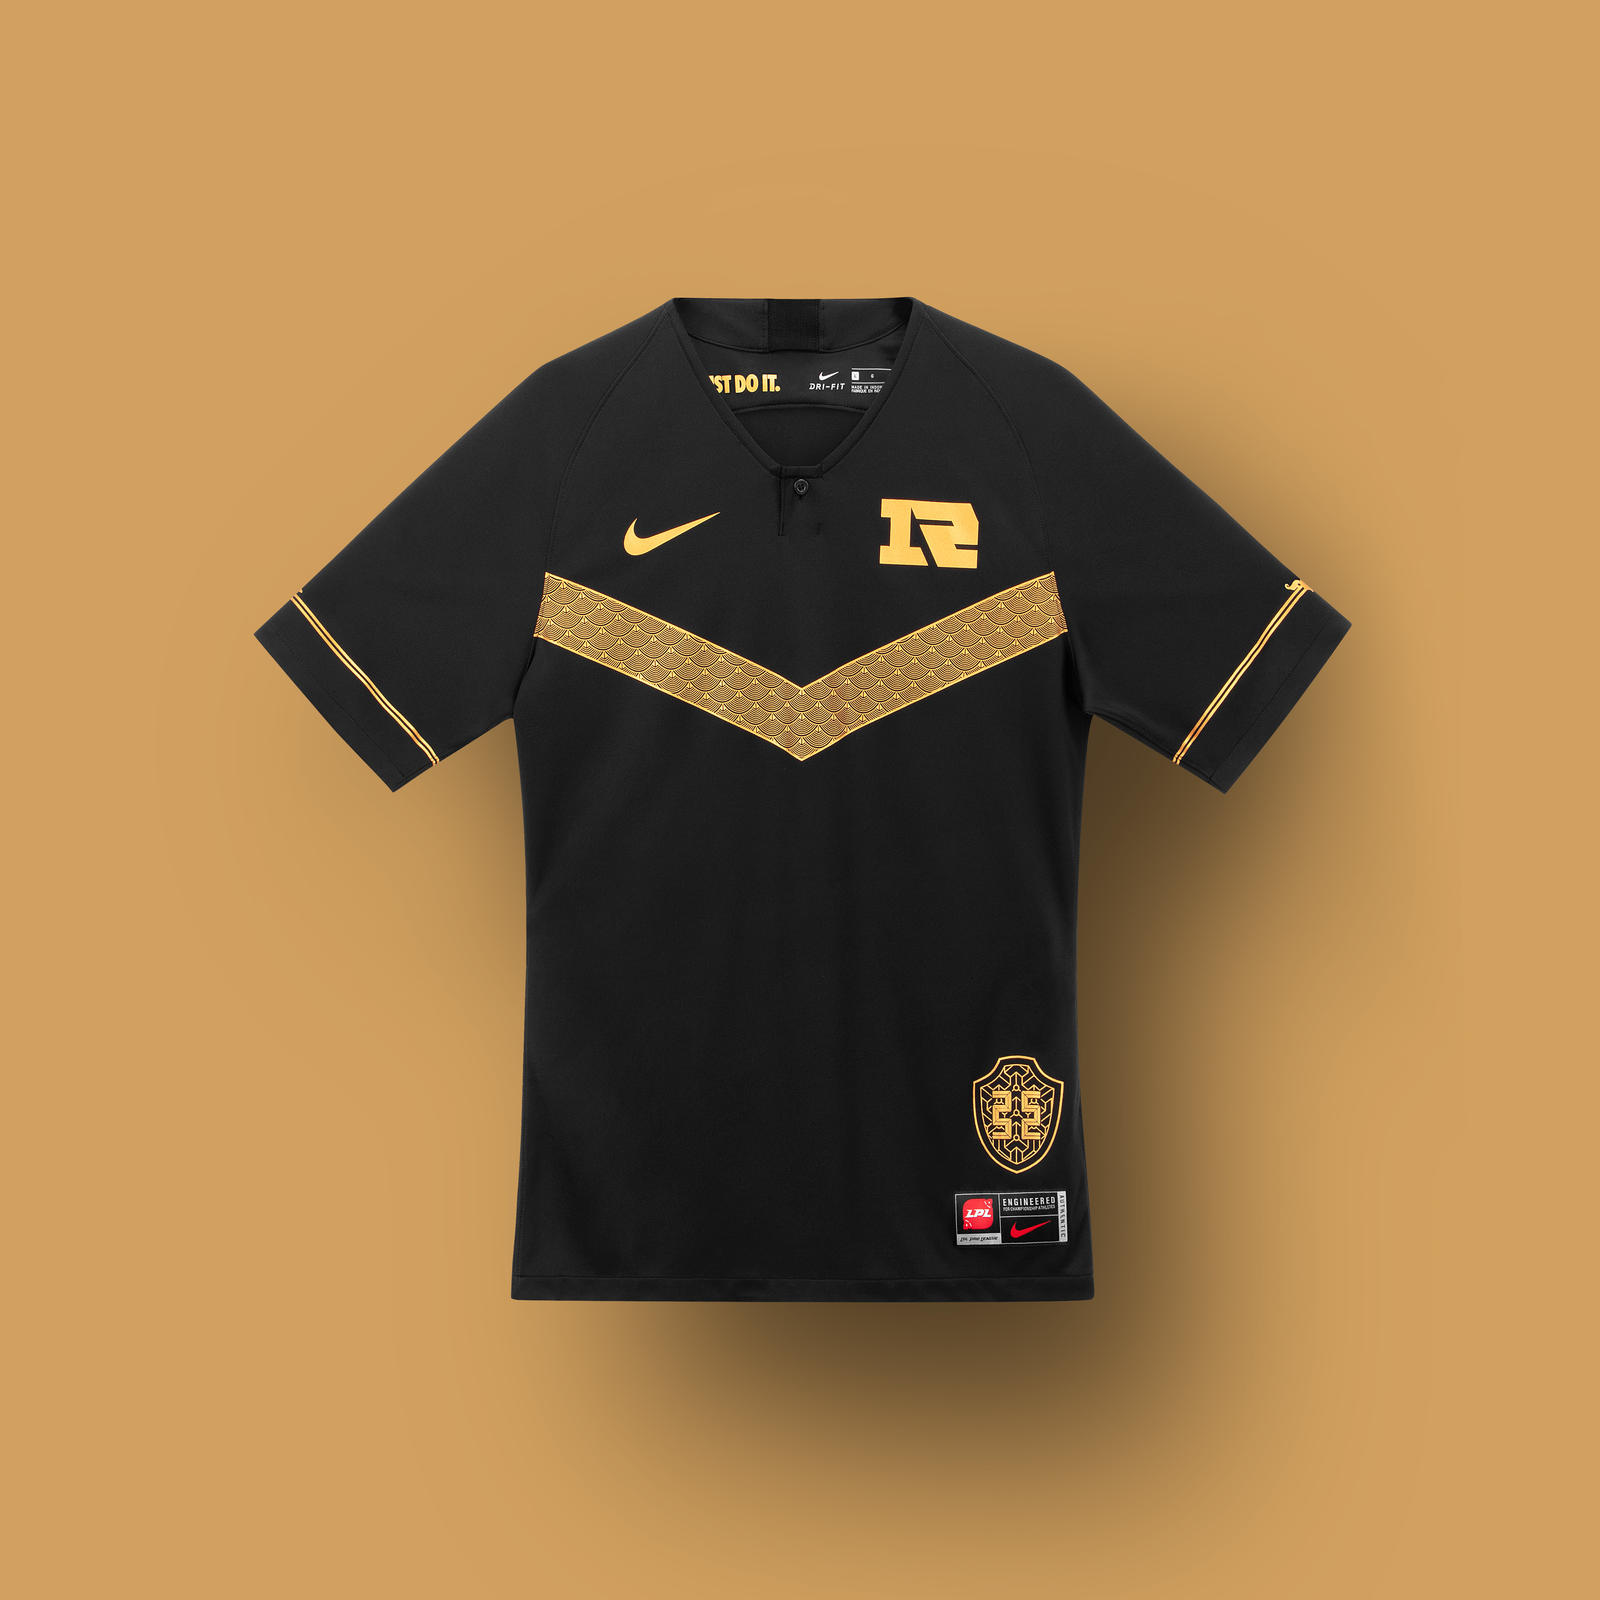 Nike League of Legends Pro League Team Kits 2019-20 Official Images 33